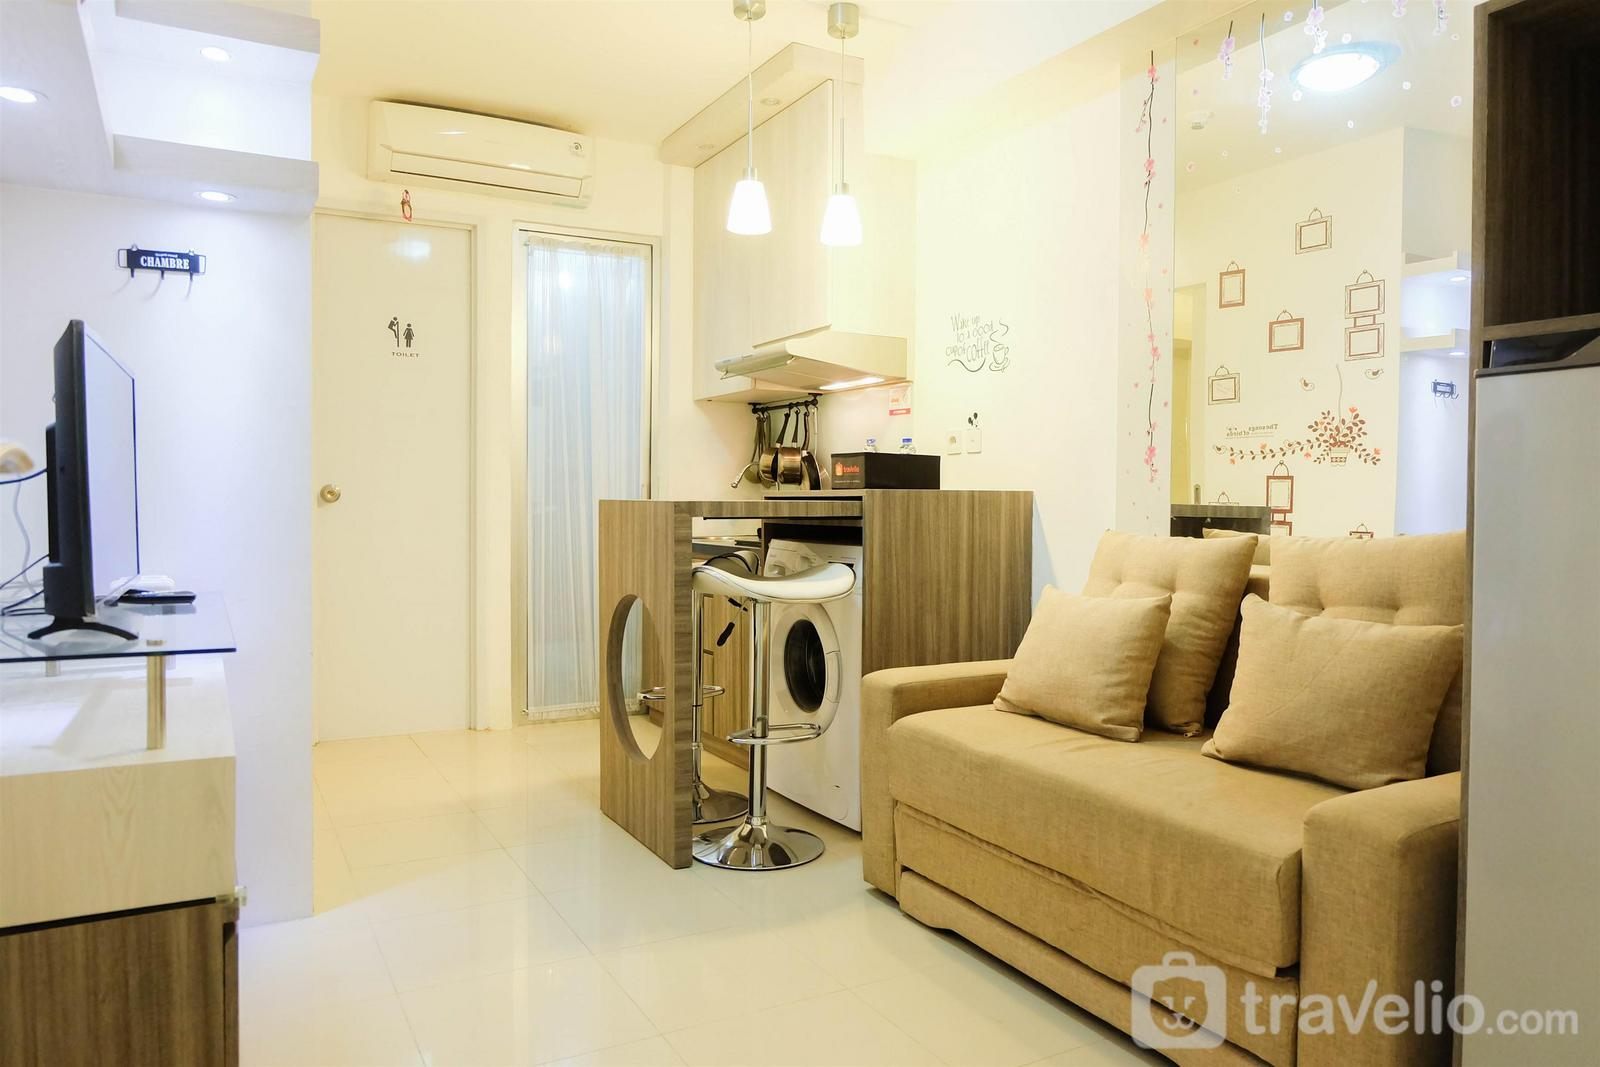 Bassura City Cipinang - Elegant 2BR Bassura City Cipinang Apartment By Travelio